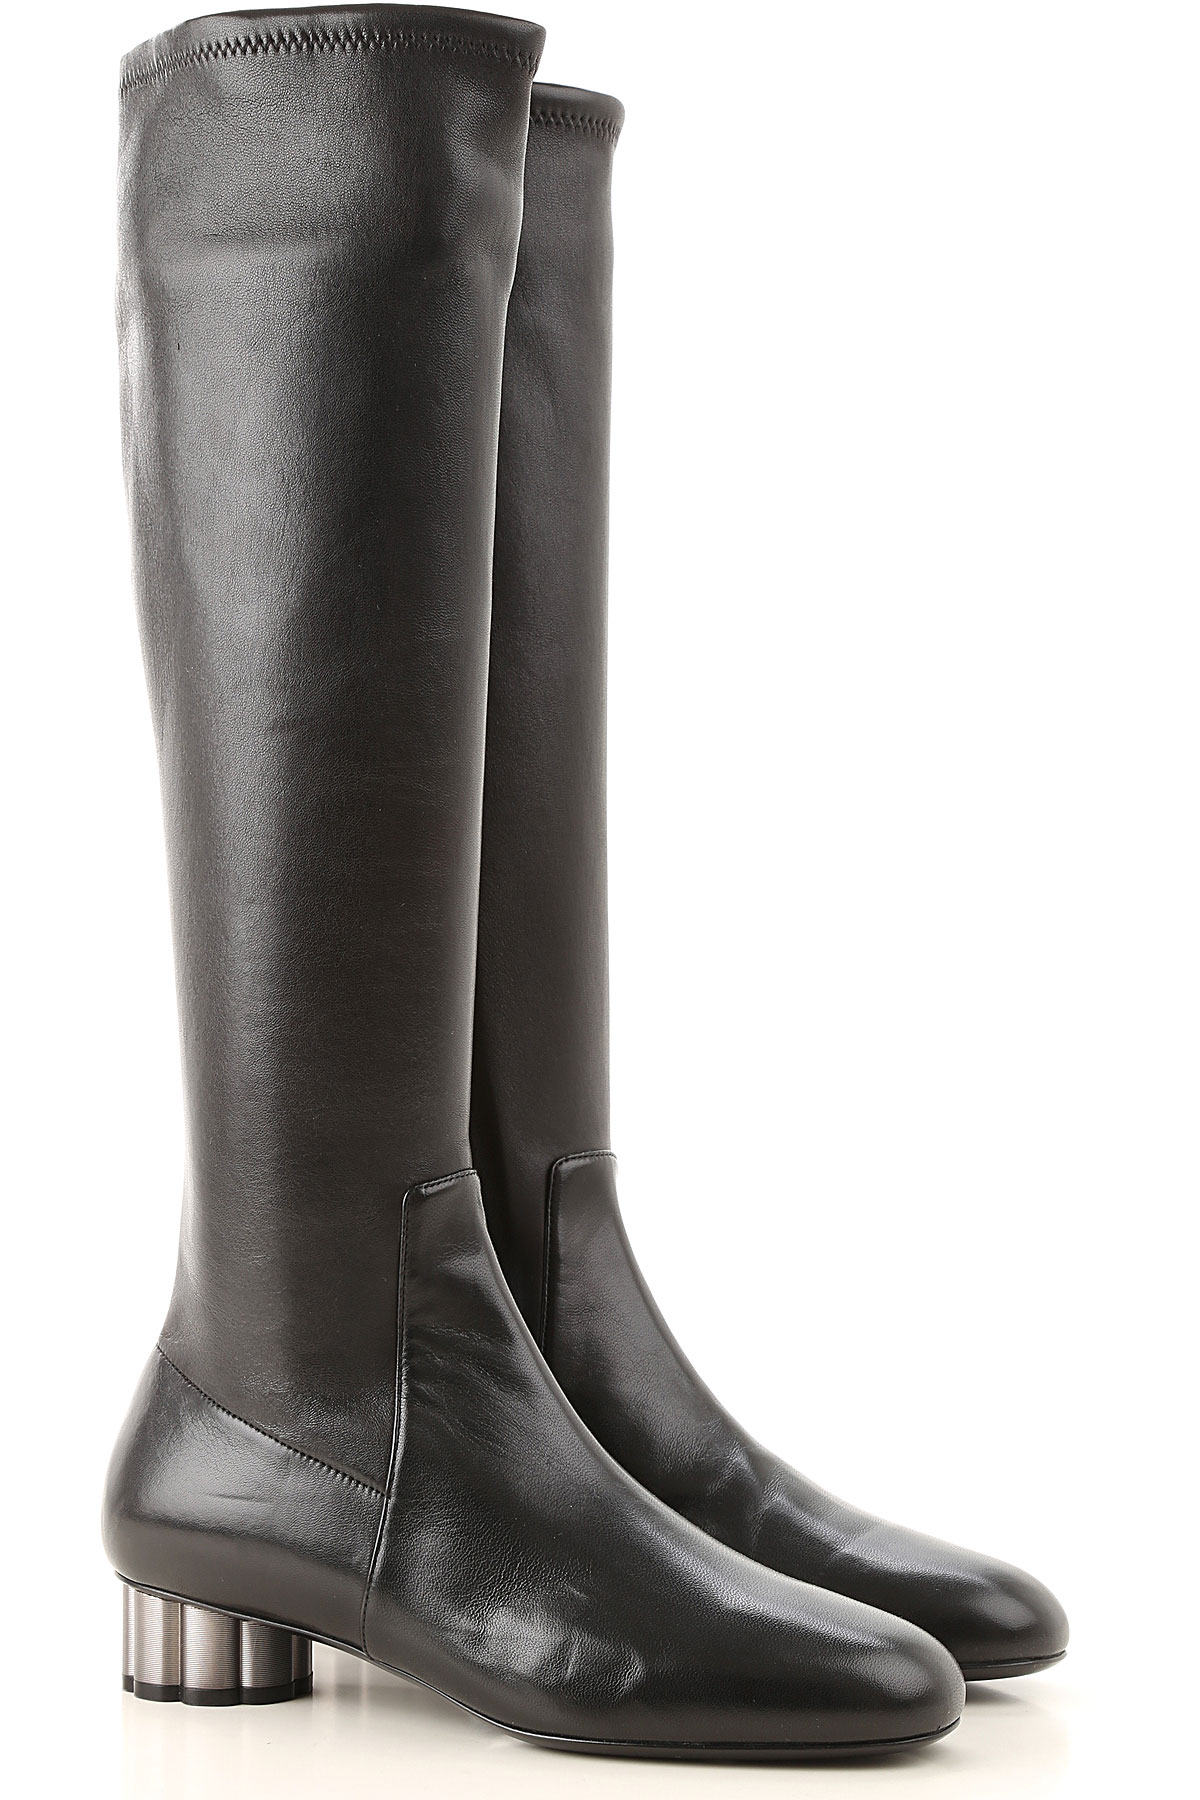 Salvatore Ferragamo Boots for Women, Booties On Sale in Outlet, Black, Leather, 2019, 5.5 6.5 7 8 8.5